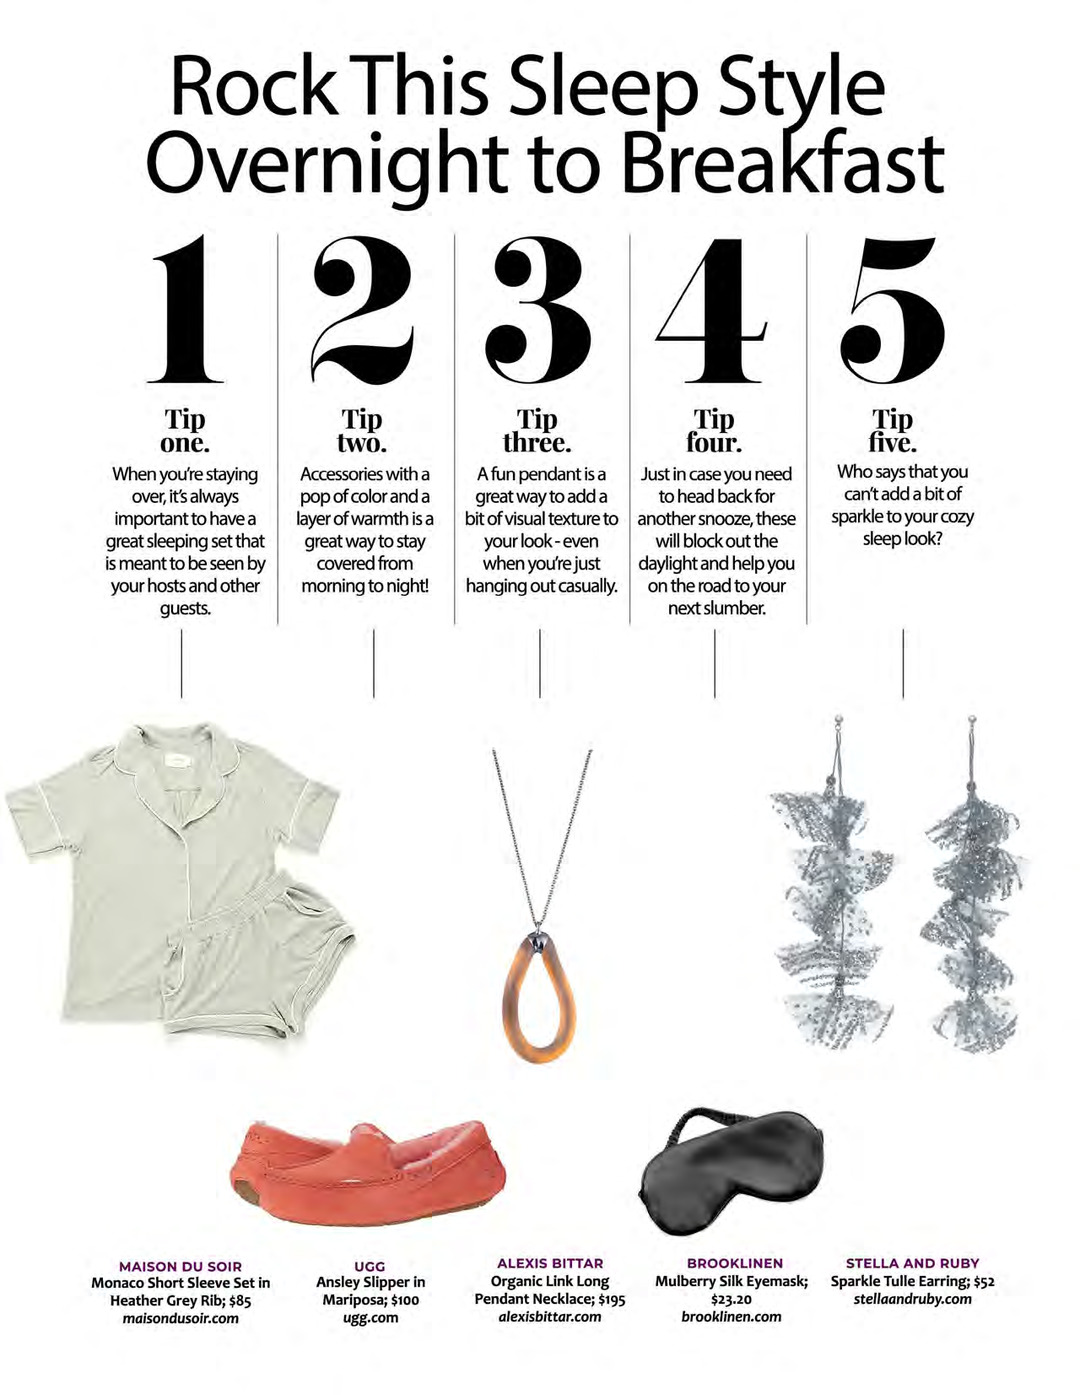 Page 127 of ATHLEISURE MAG NOV 2019 | ROCK THIS SLEEP STYLE OVERNIGHT TO BREAKFAST